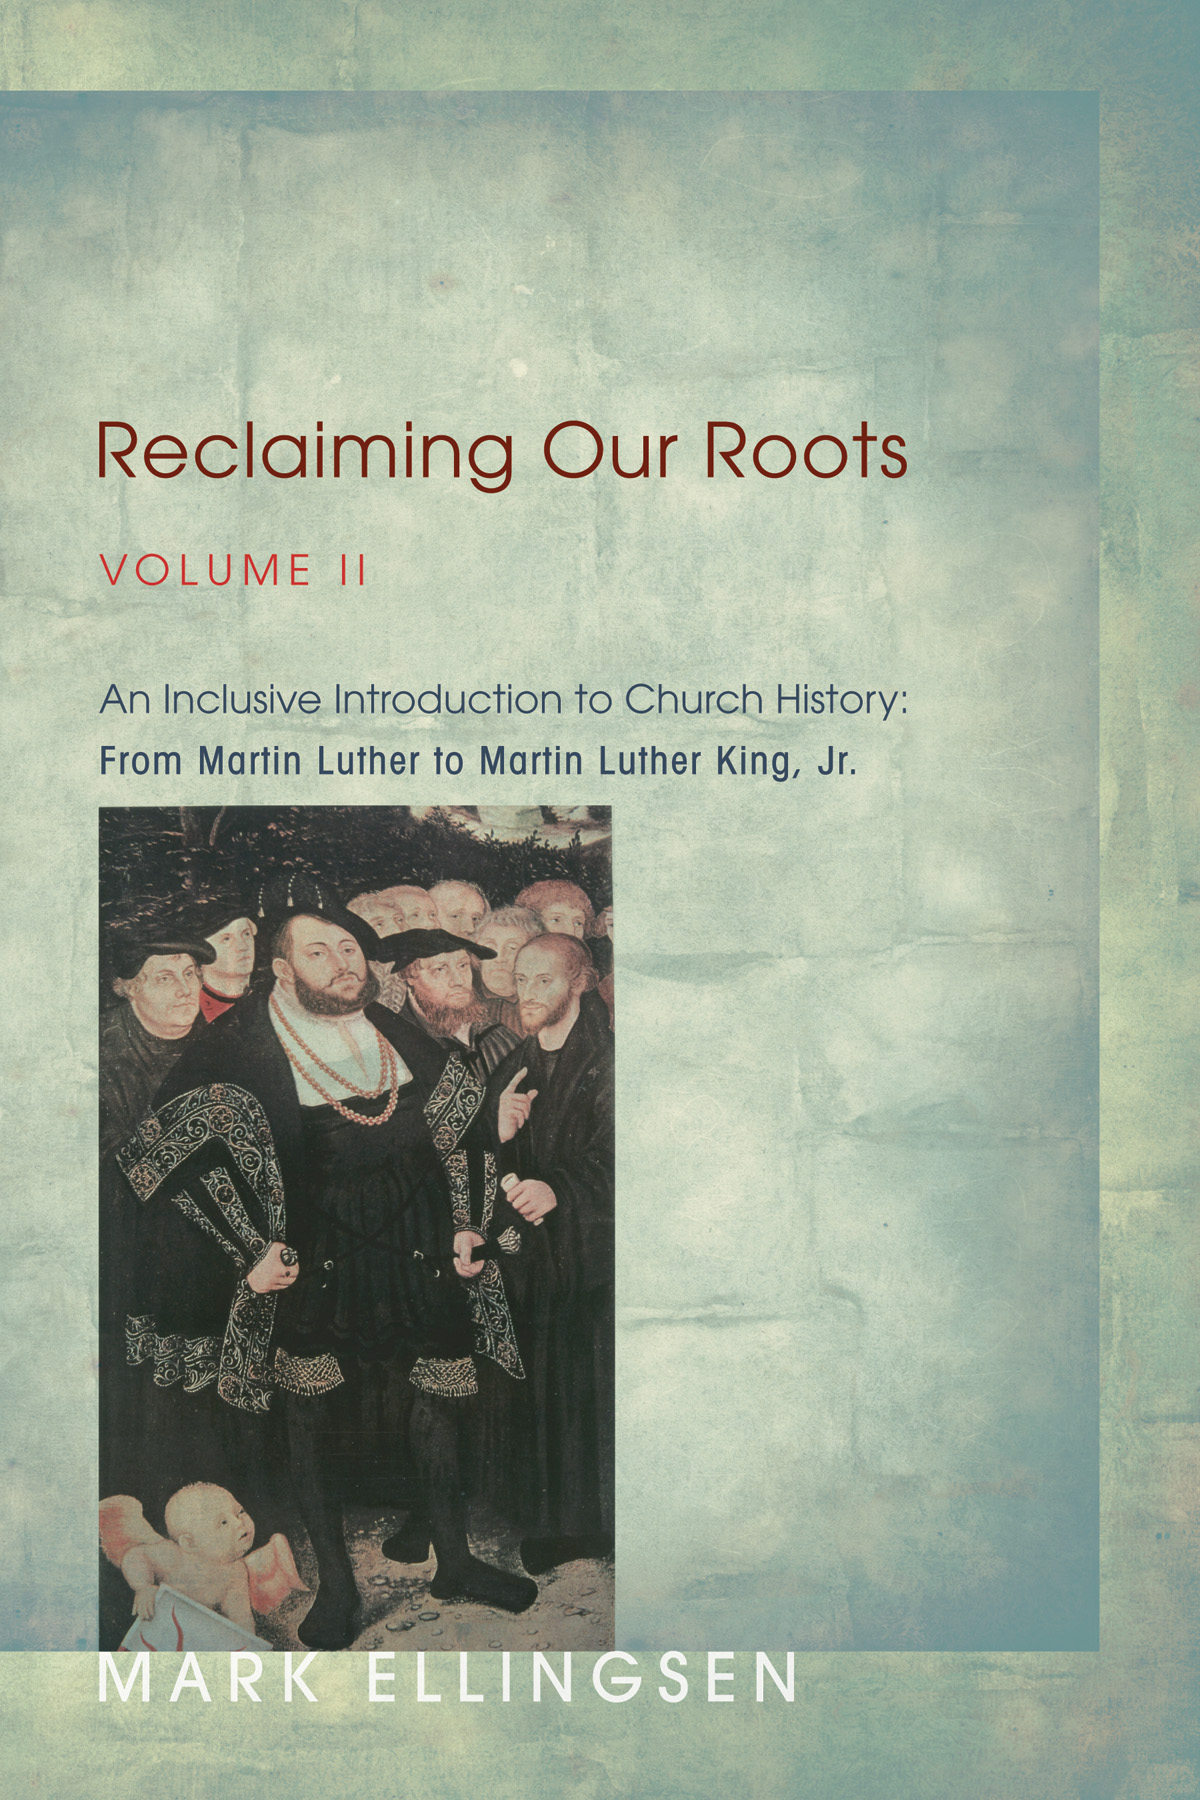 an introduction to the history of martin luther Martin luther's reformation ranks among the most successful religious movements in history see an introduction to the themes and major highlights of the.